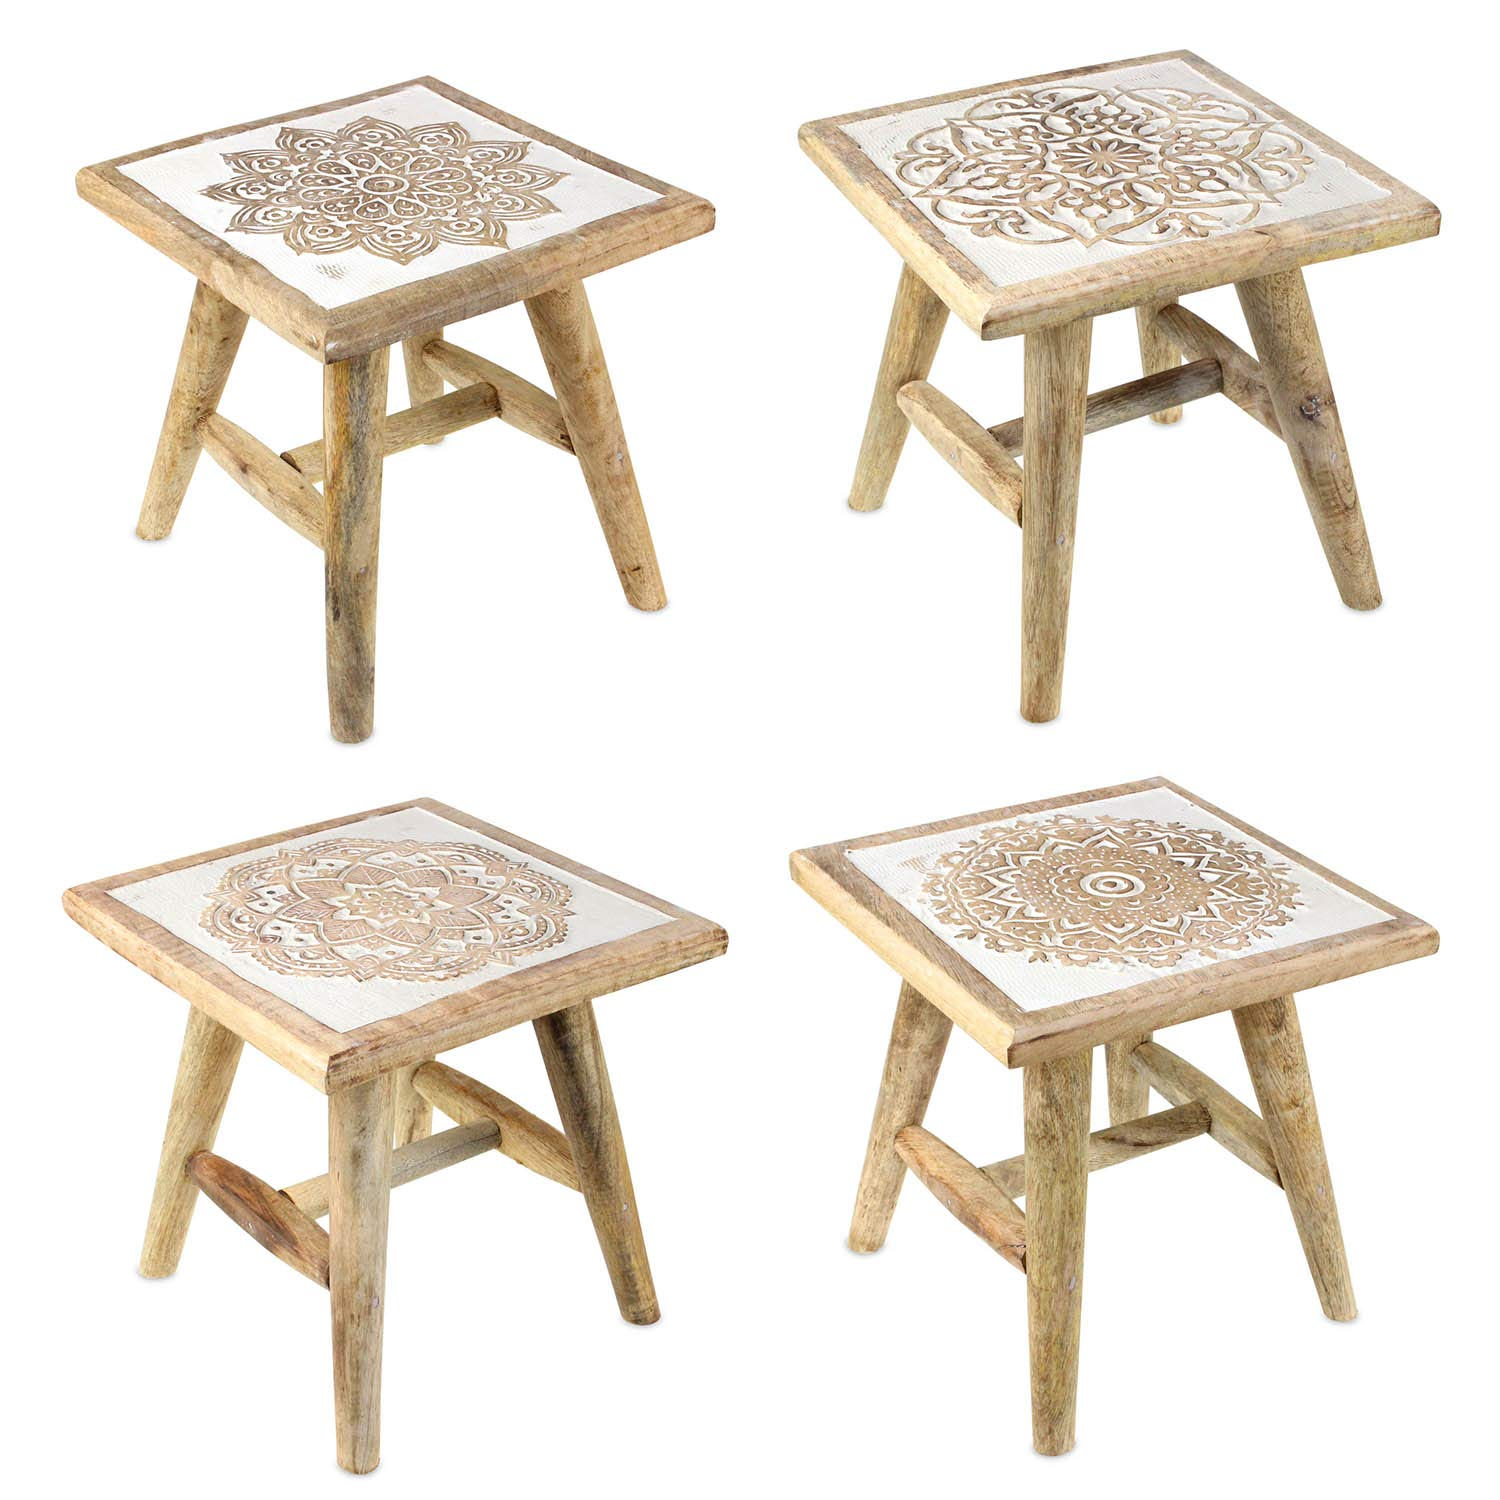 Carousel Home and Gifts White Washed Rustic Shabby Chic Wooden Hand Carved Mango Wood Stool ~ Design Vary